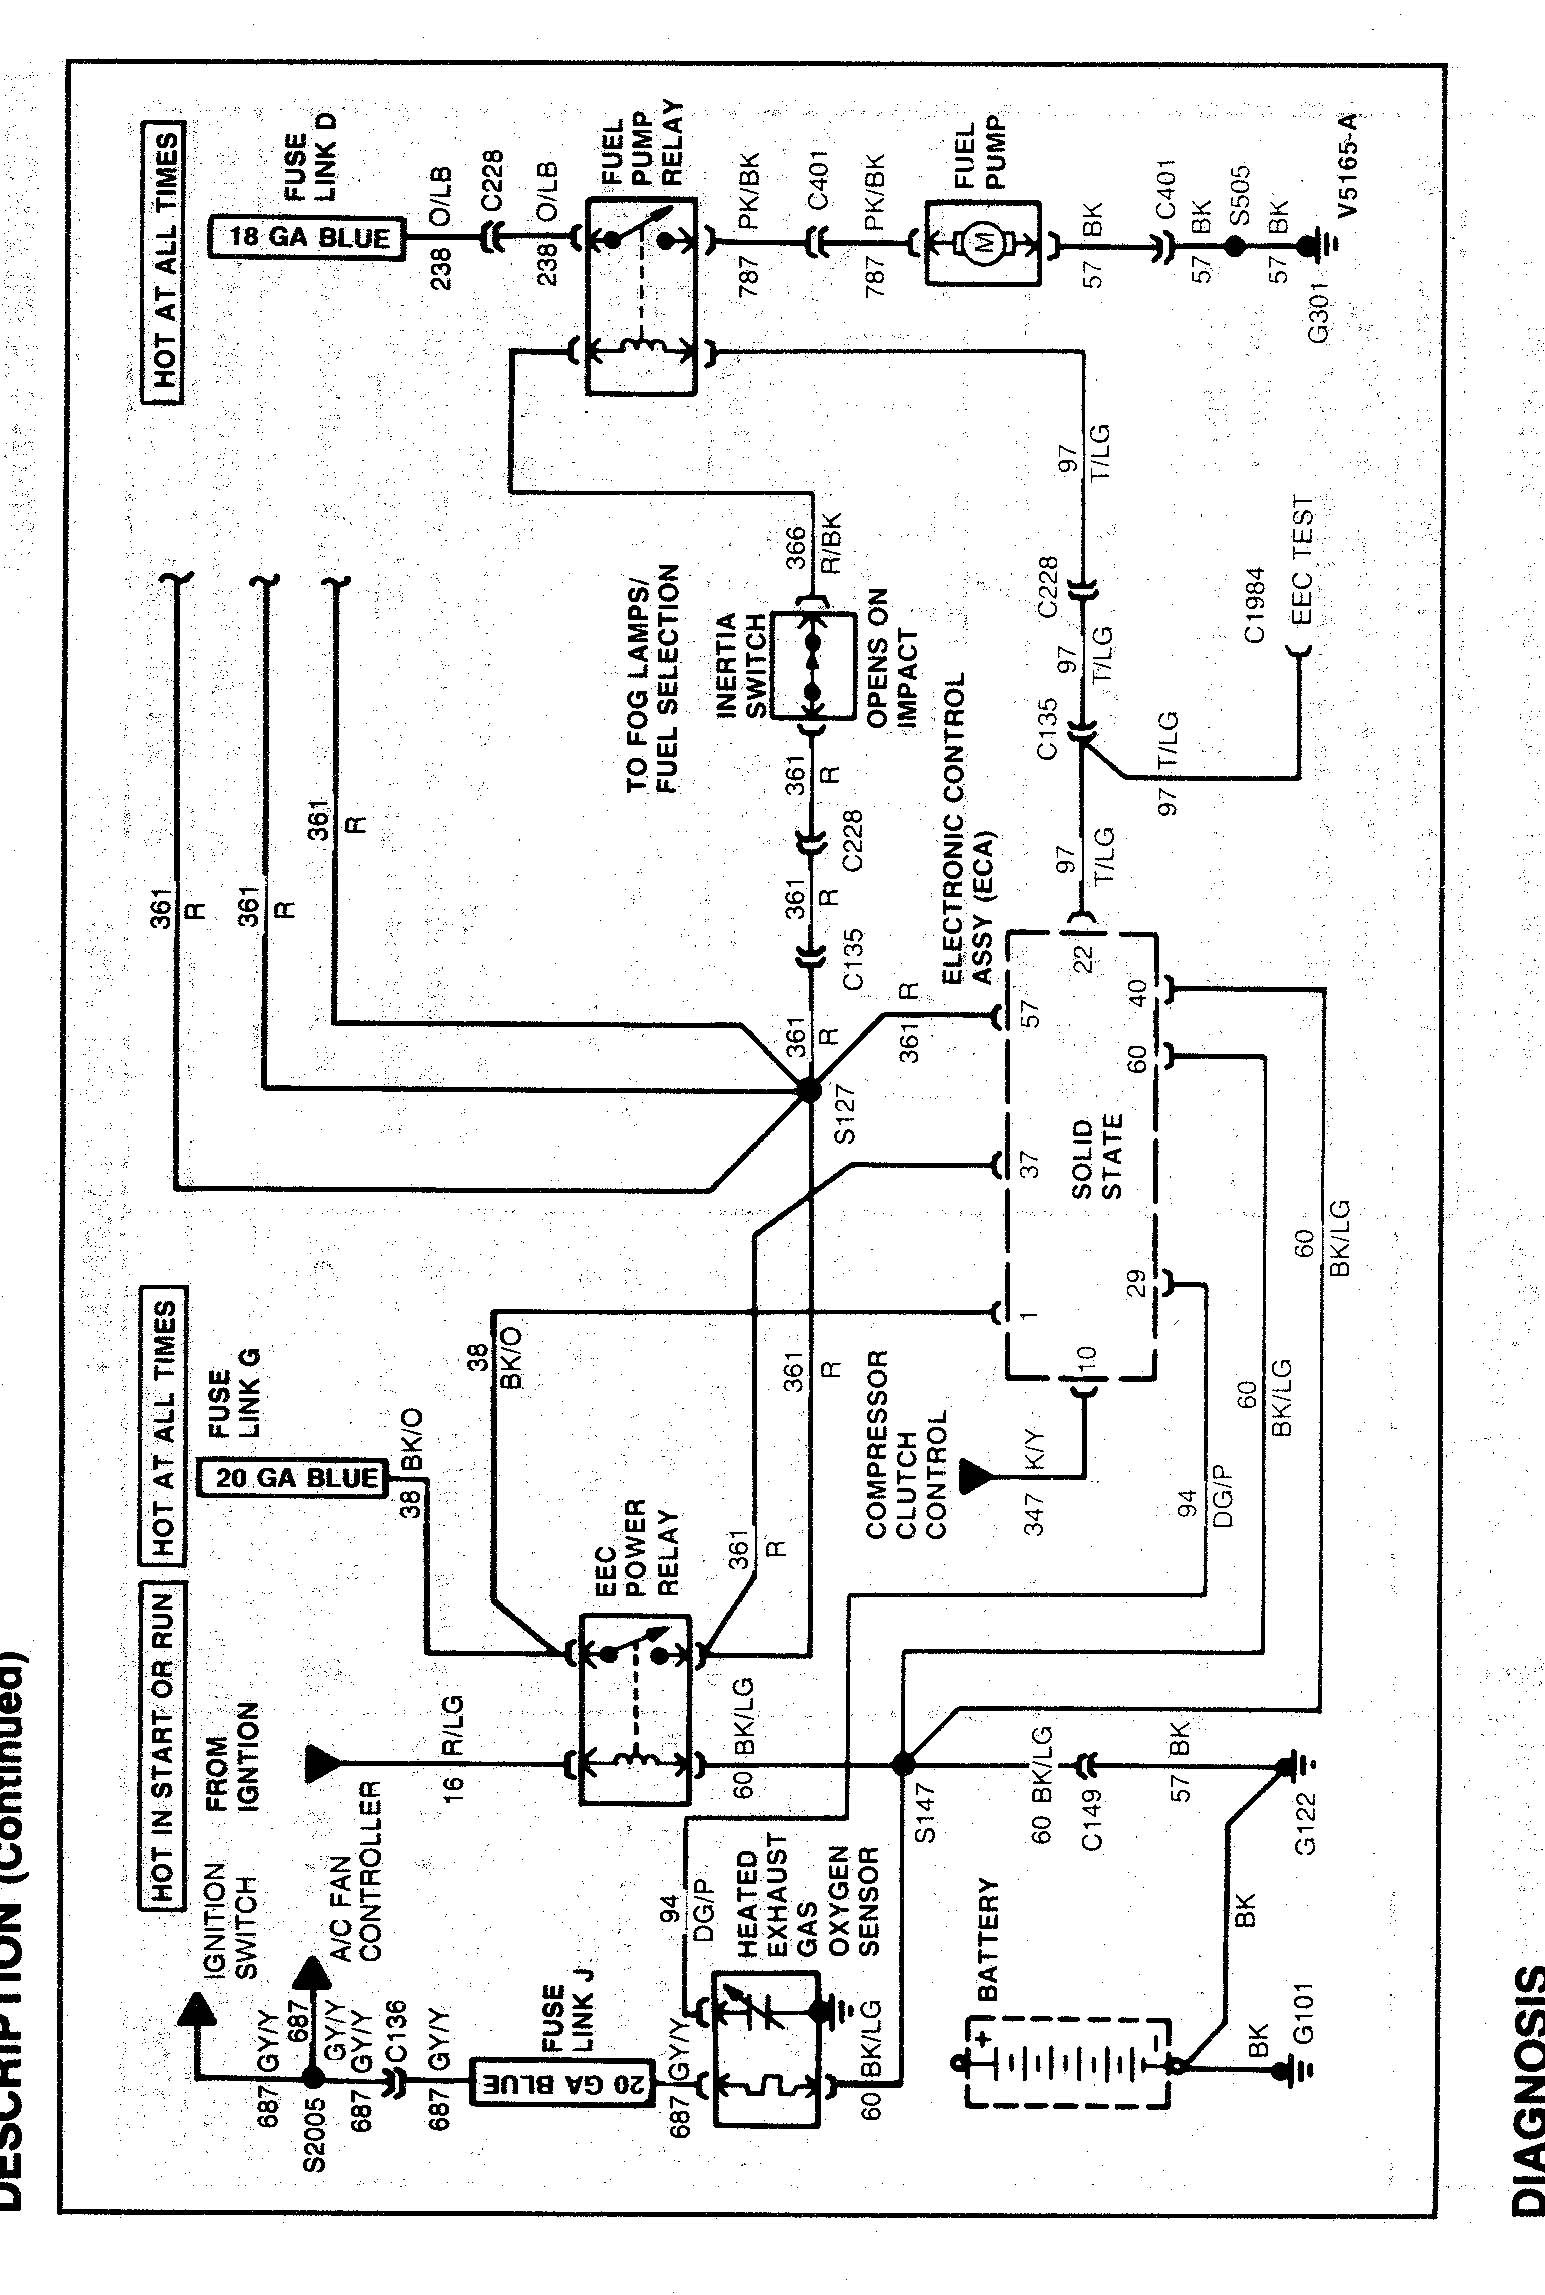 1928d1051592166 may electrical fuel pump but im not sure mustangfuelelectricaldiagram2 1997 ford explorer 5 0 wiring diagram wirdig readingrat net 2000 ford mustang gt fuel pump wiring diagram at bakdesigns.co